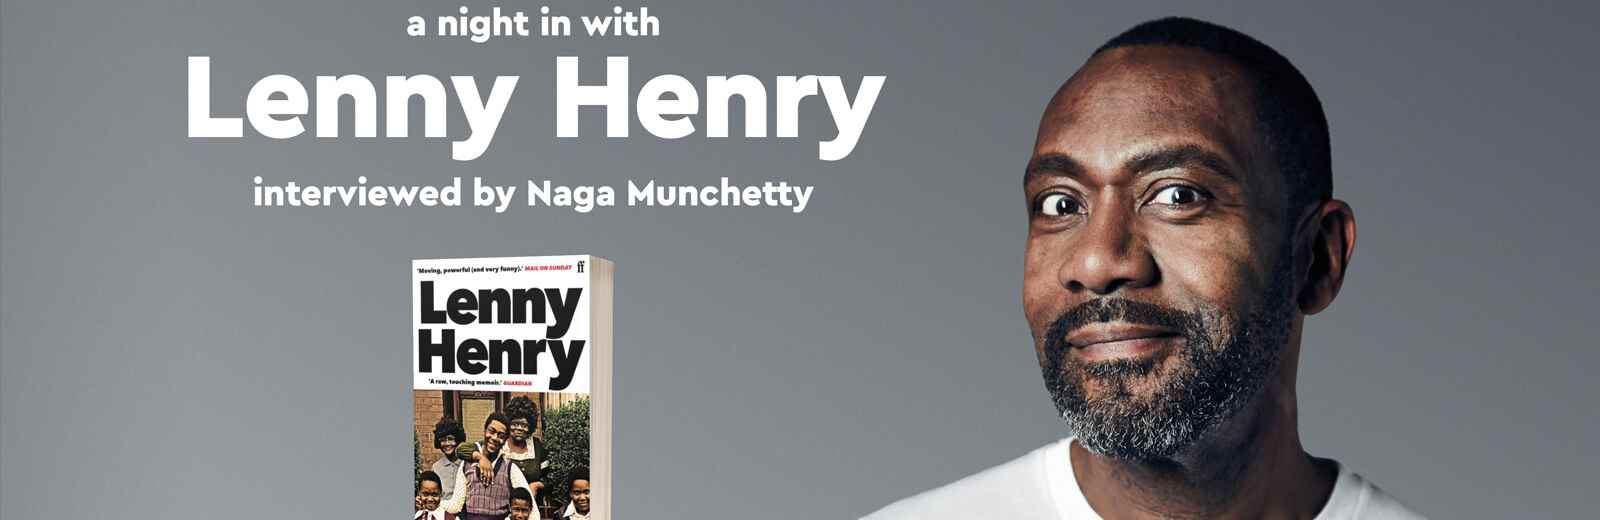 A Night in with Lenny Henry